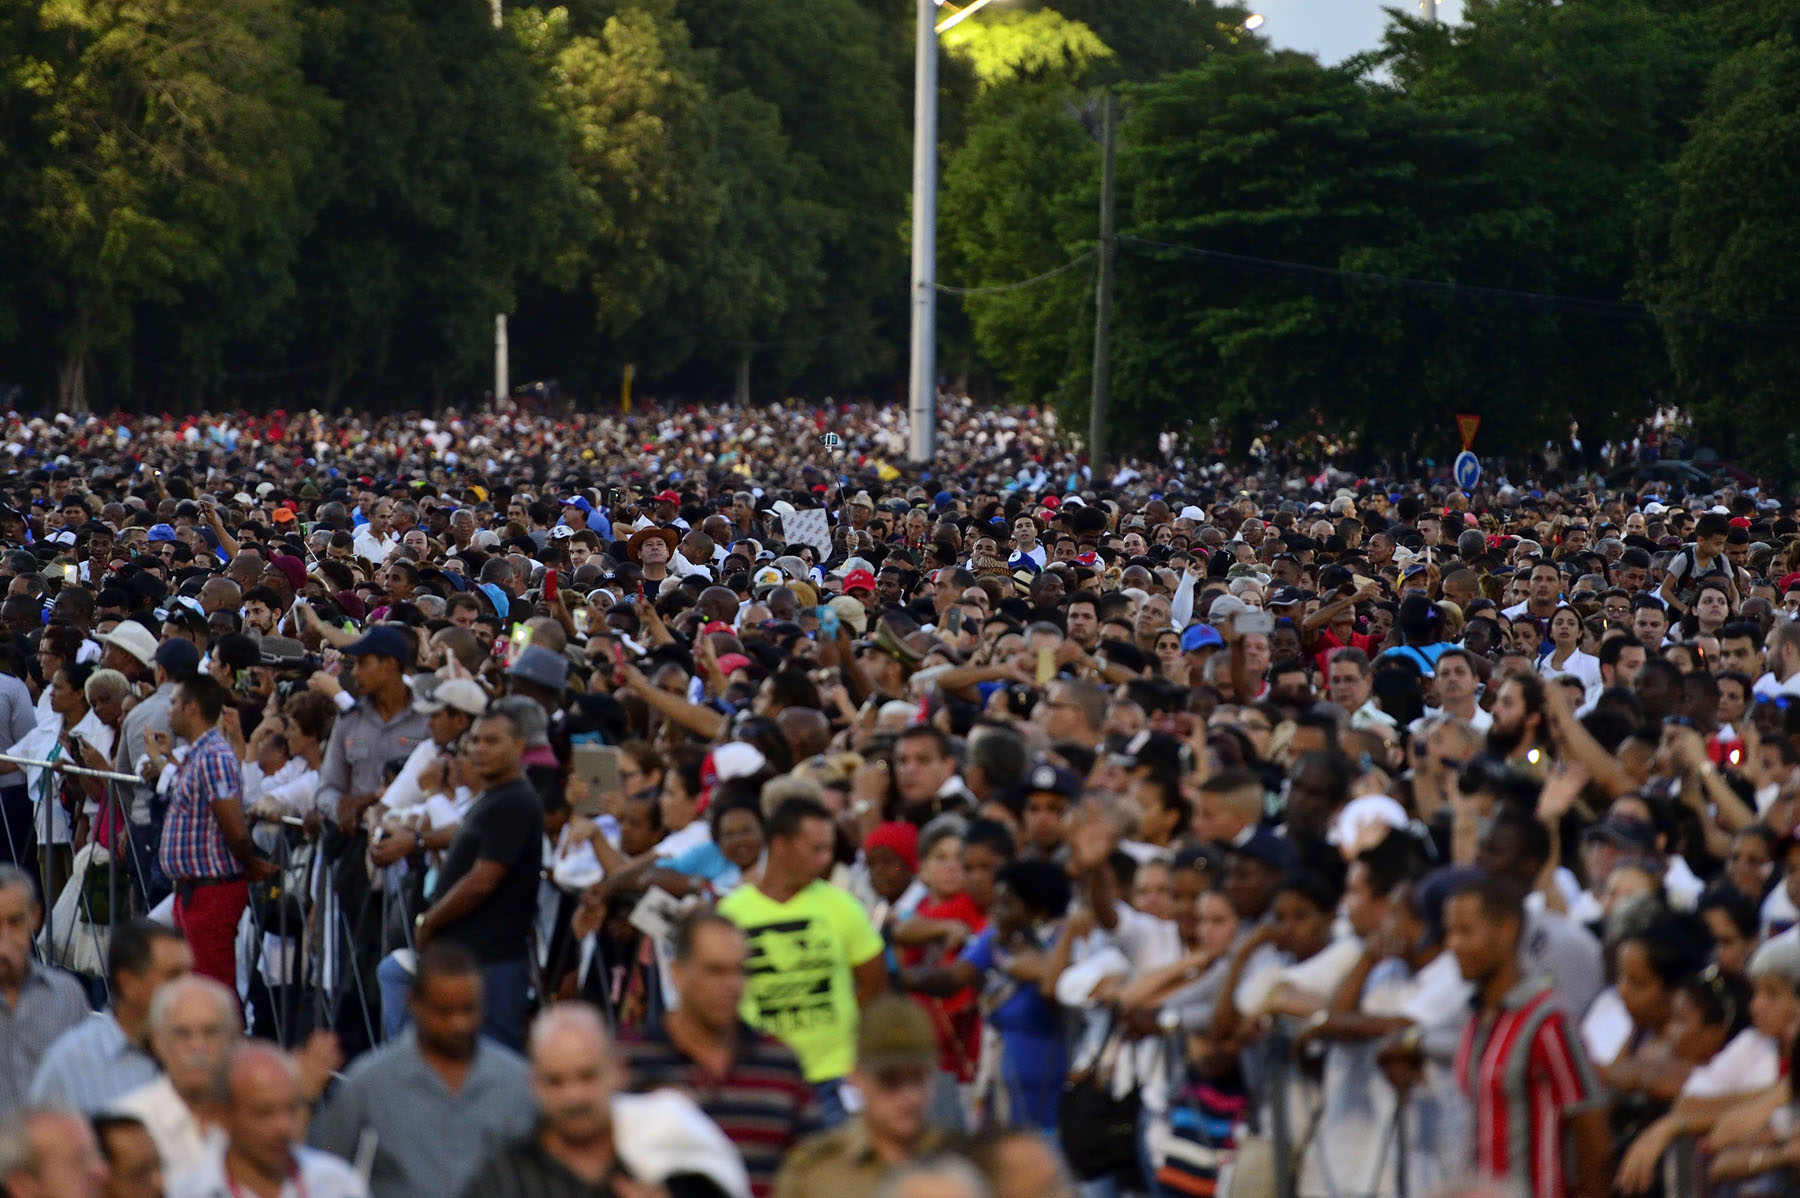 Thousands of people gathered at the Plaza de la Revolución in Havana in honour of former president Fidel Castro.